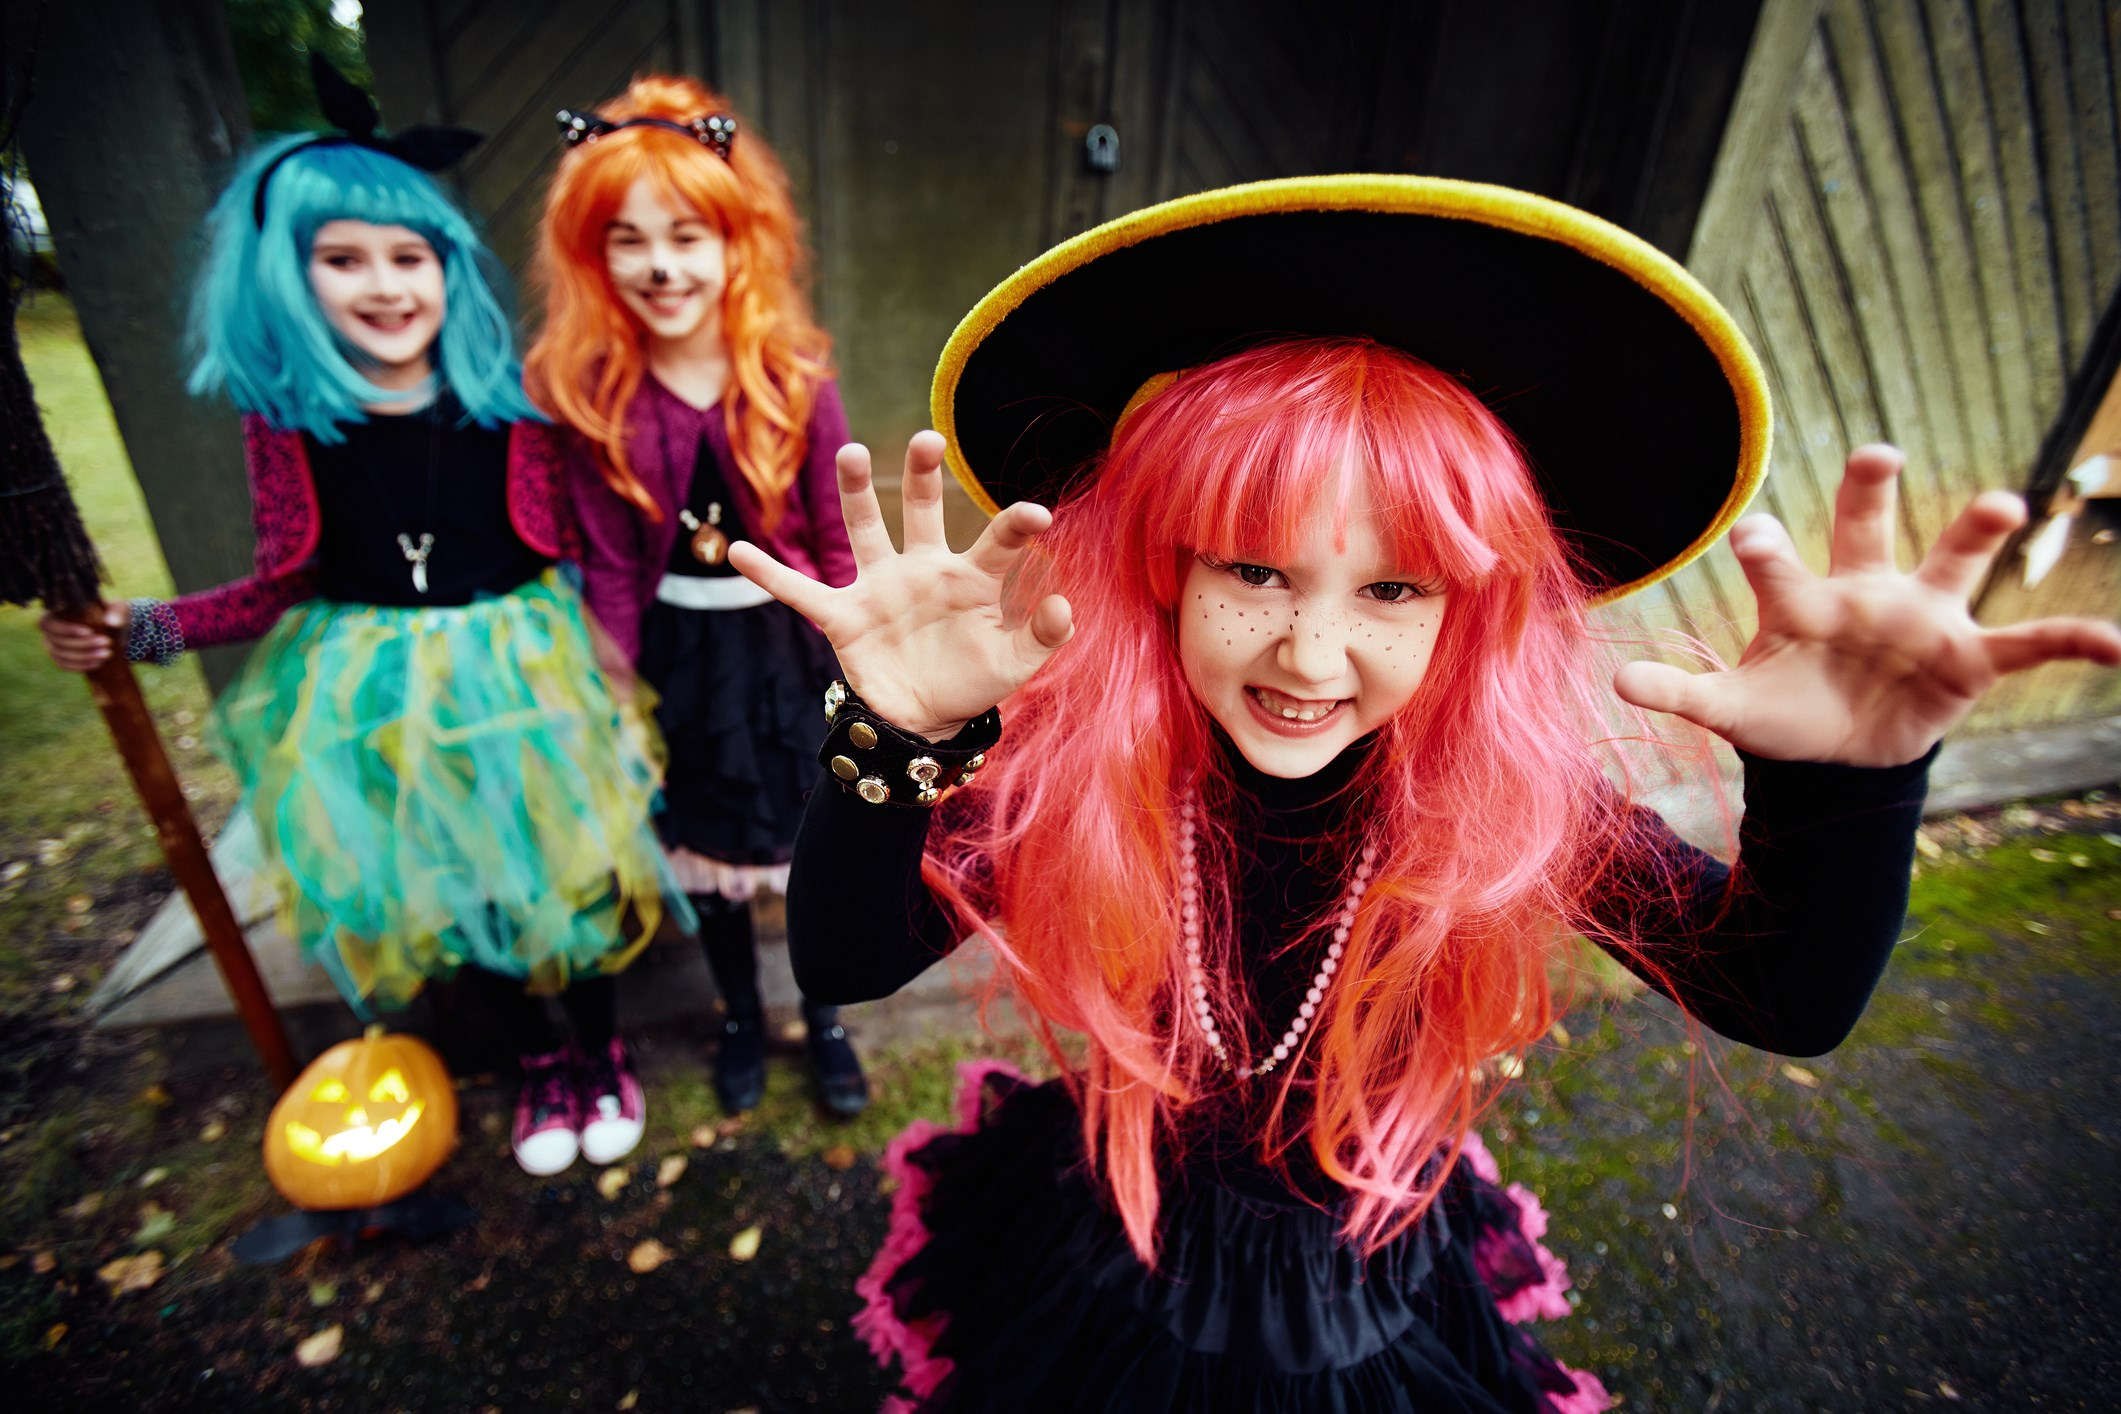 Family friendly Halloween events in East Tennessee | WBIR.com